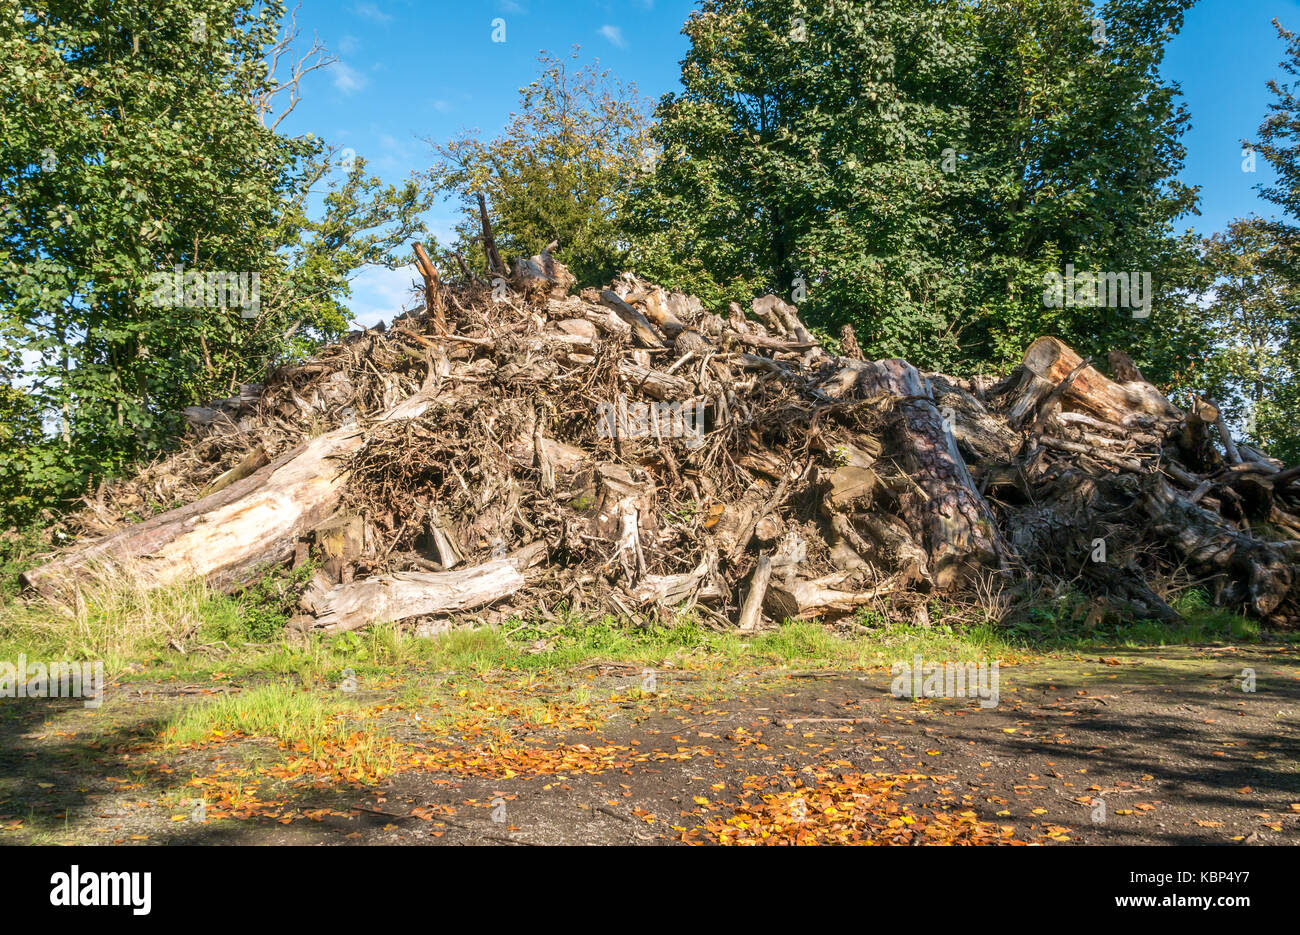 Forestry management of large pile of uprooted tree stumps and logs on managed woodland, Gilberton estate, East Lothian, - Stock Image